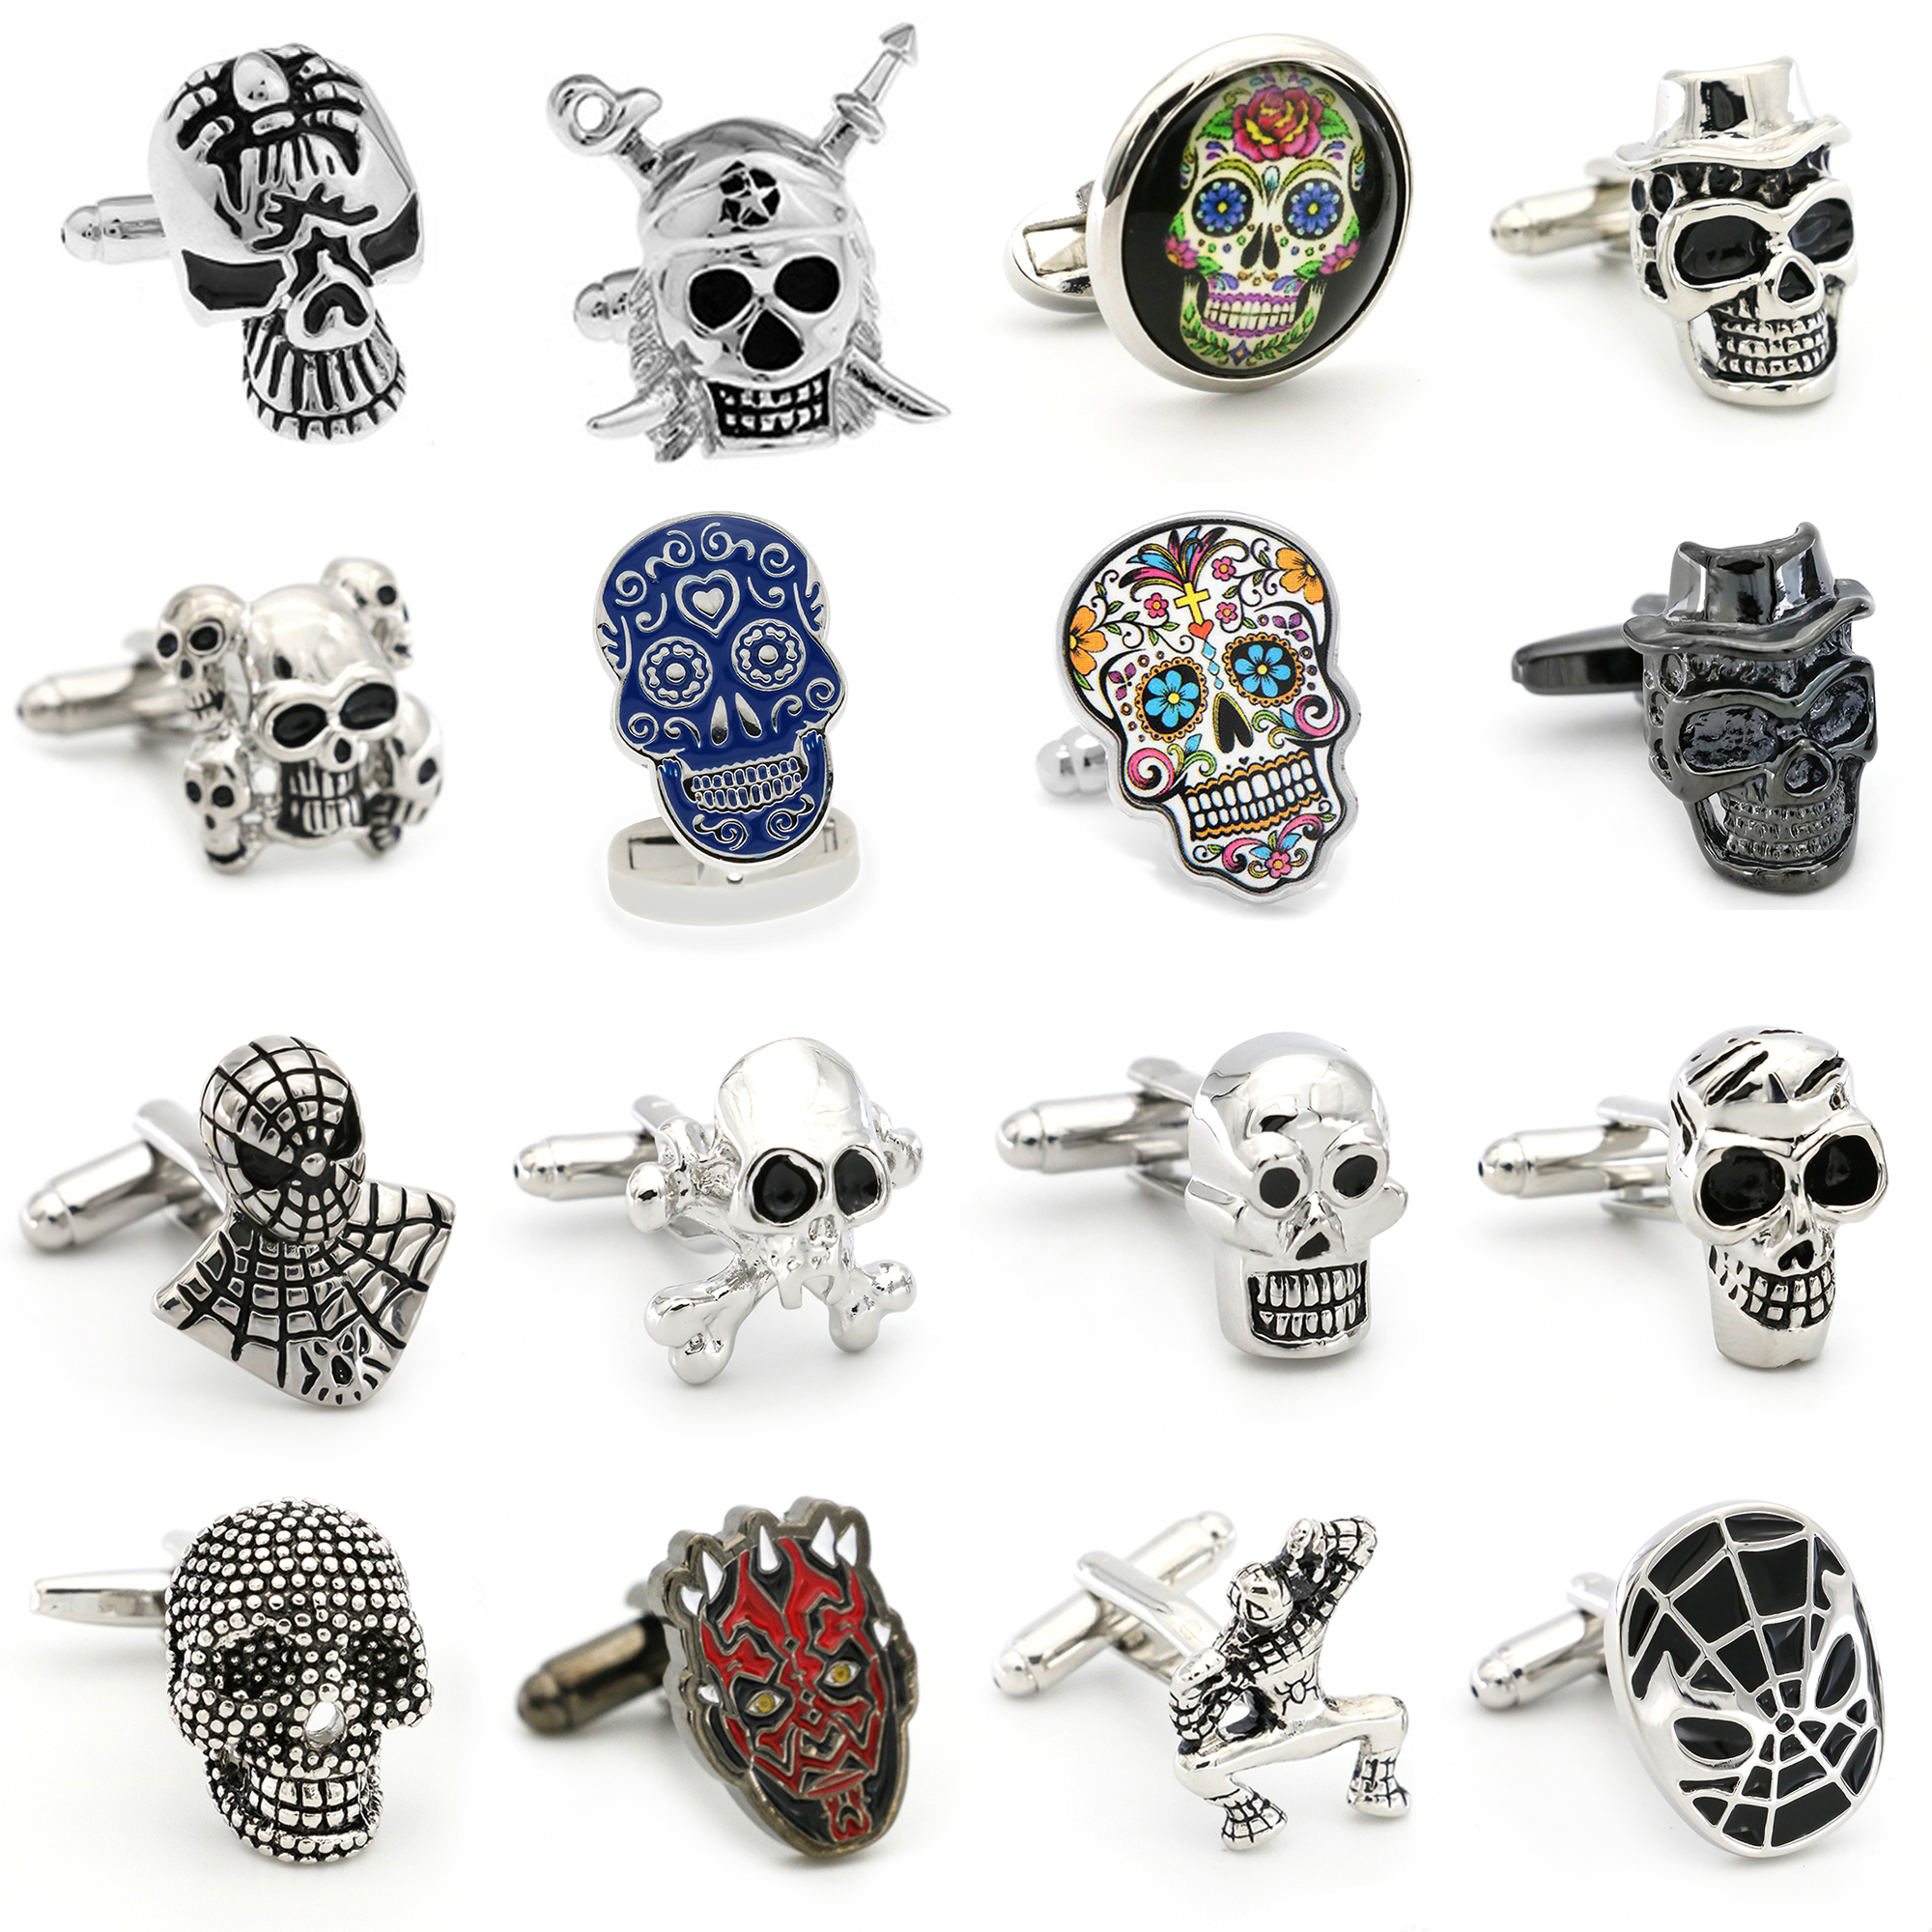 Skull Cufflinks Vintage Skeleton Designs Wholesale Men 28 Men's Retail